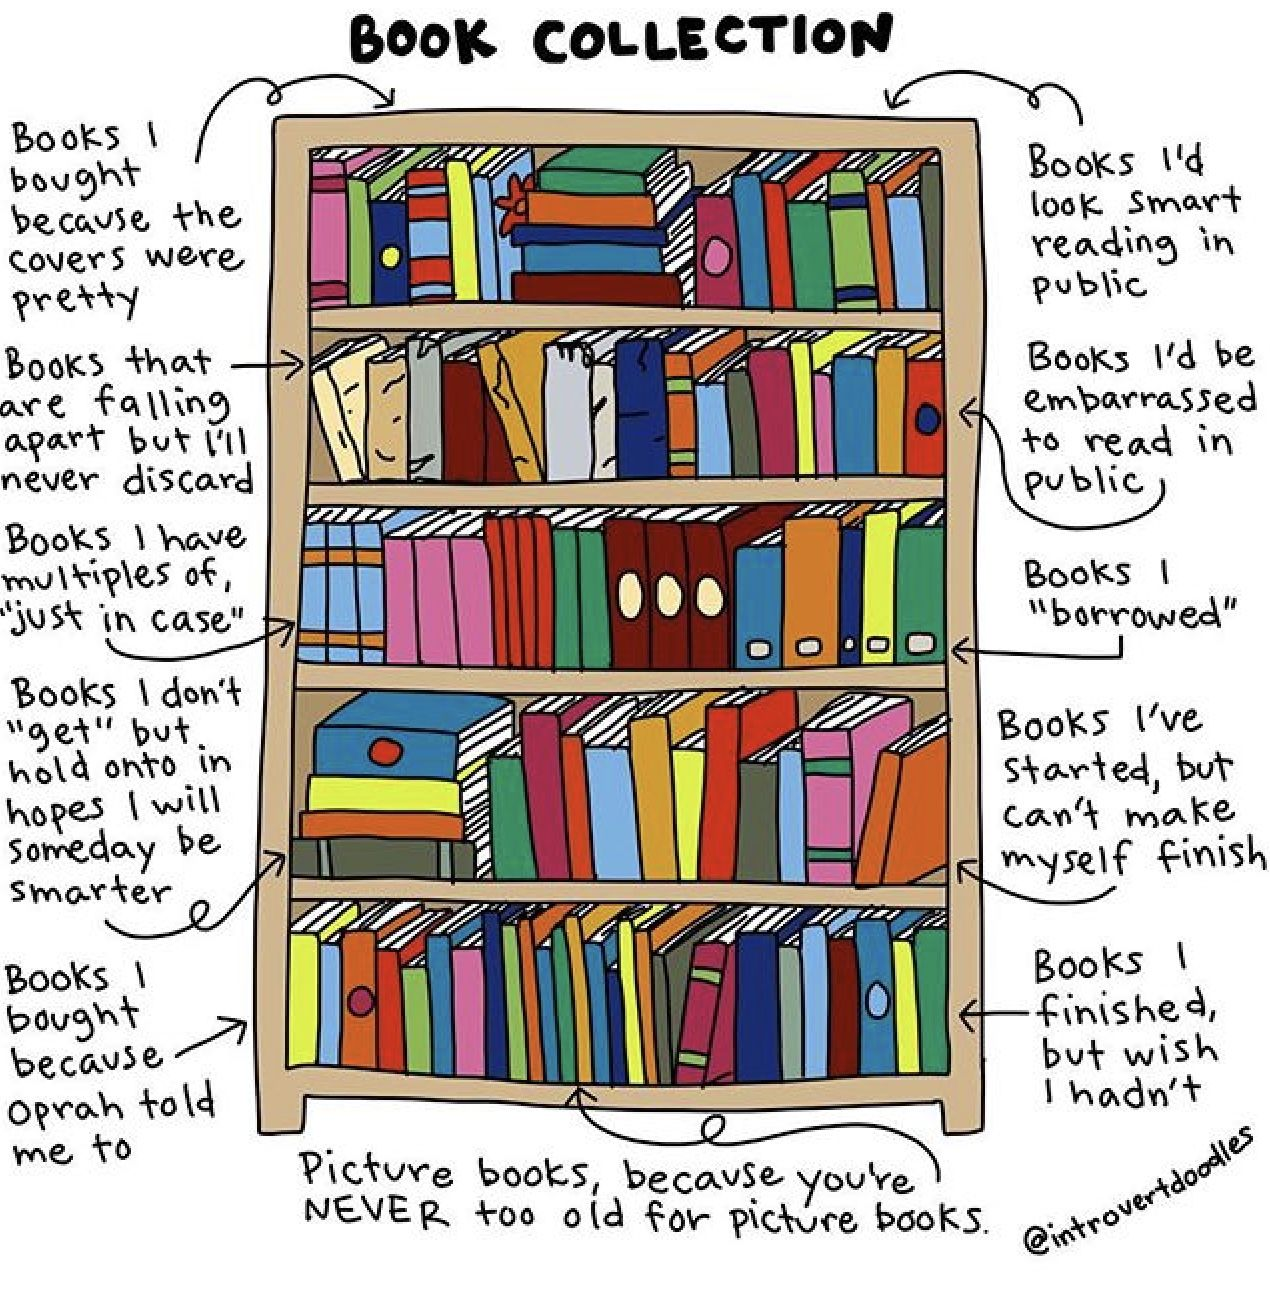 Pin By Mikaela Sula On Bookworms Book Lovers Book Memes Book Nerd Problems